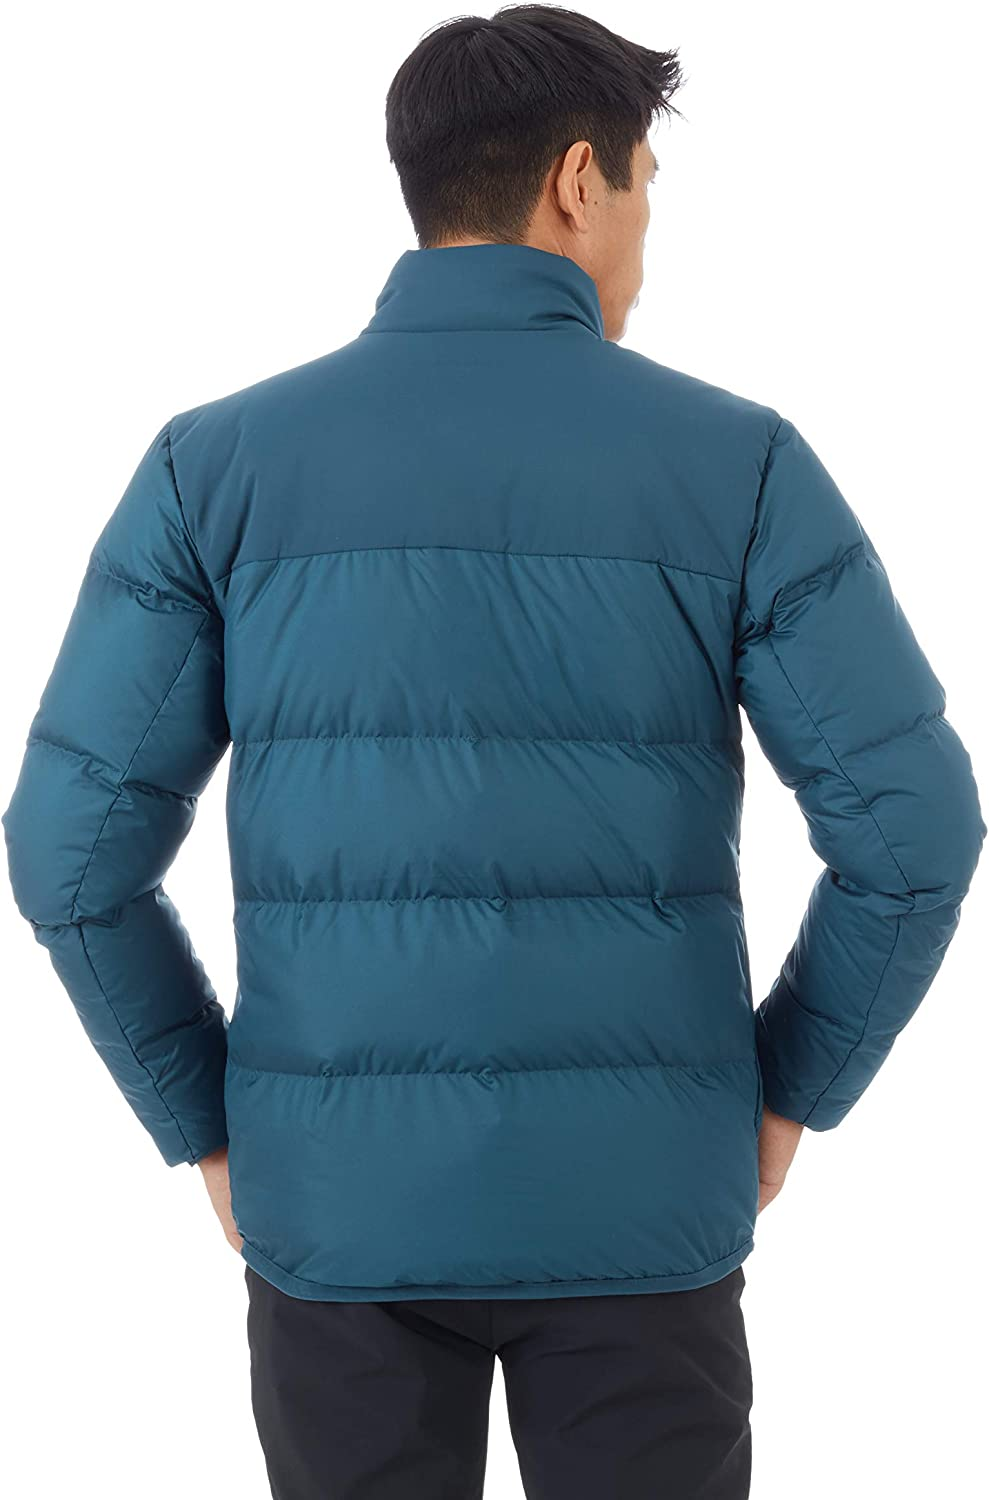 Mammoth men's whitehorn down jackets, Men, 1010-22200-5868-113 Wing Teal-sapphire